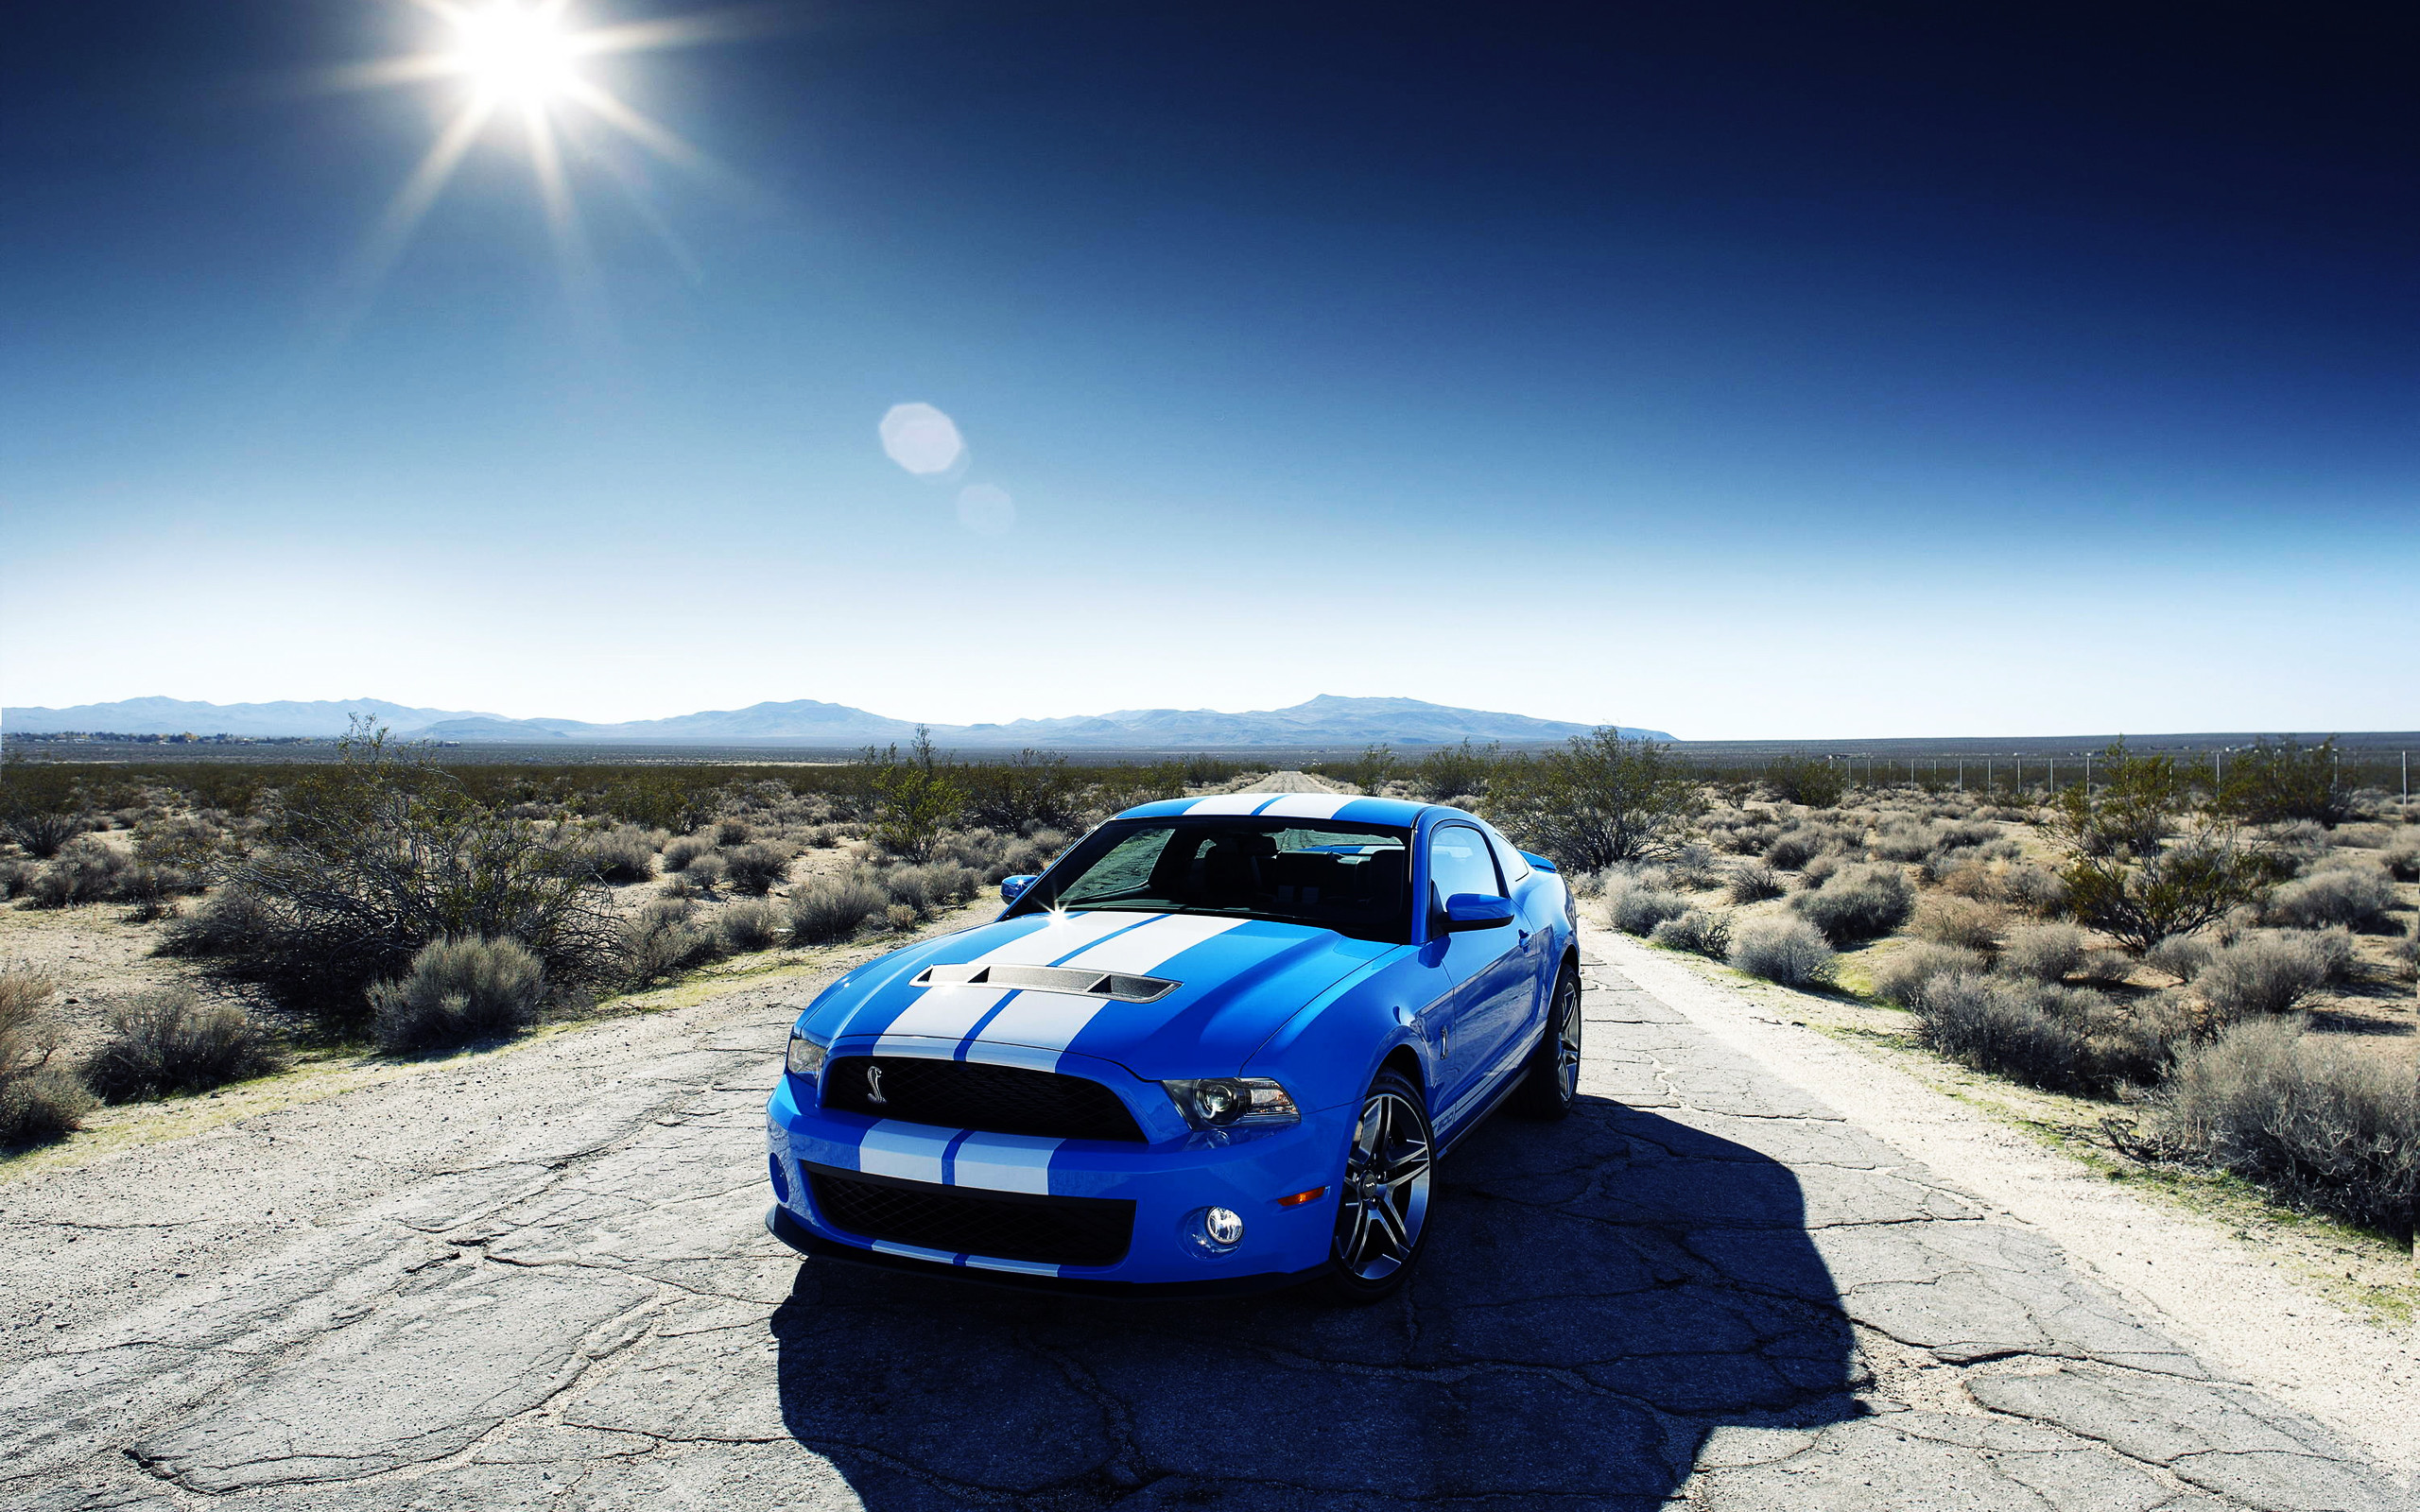 2560x1600 ... #4040856 Cars Wallpaper for PC, Mobile ...